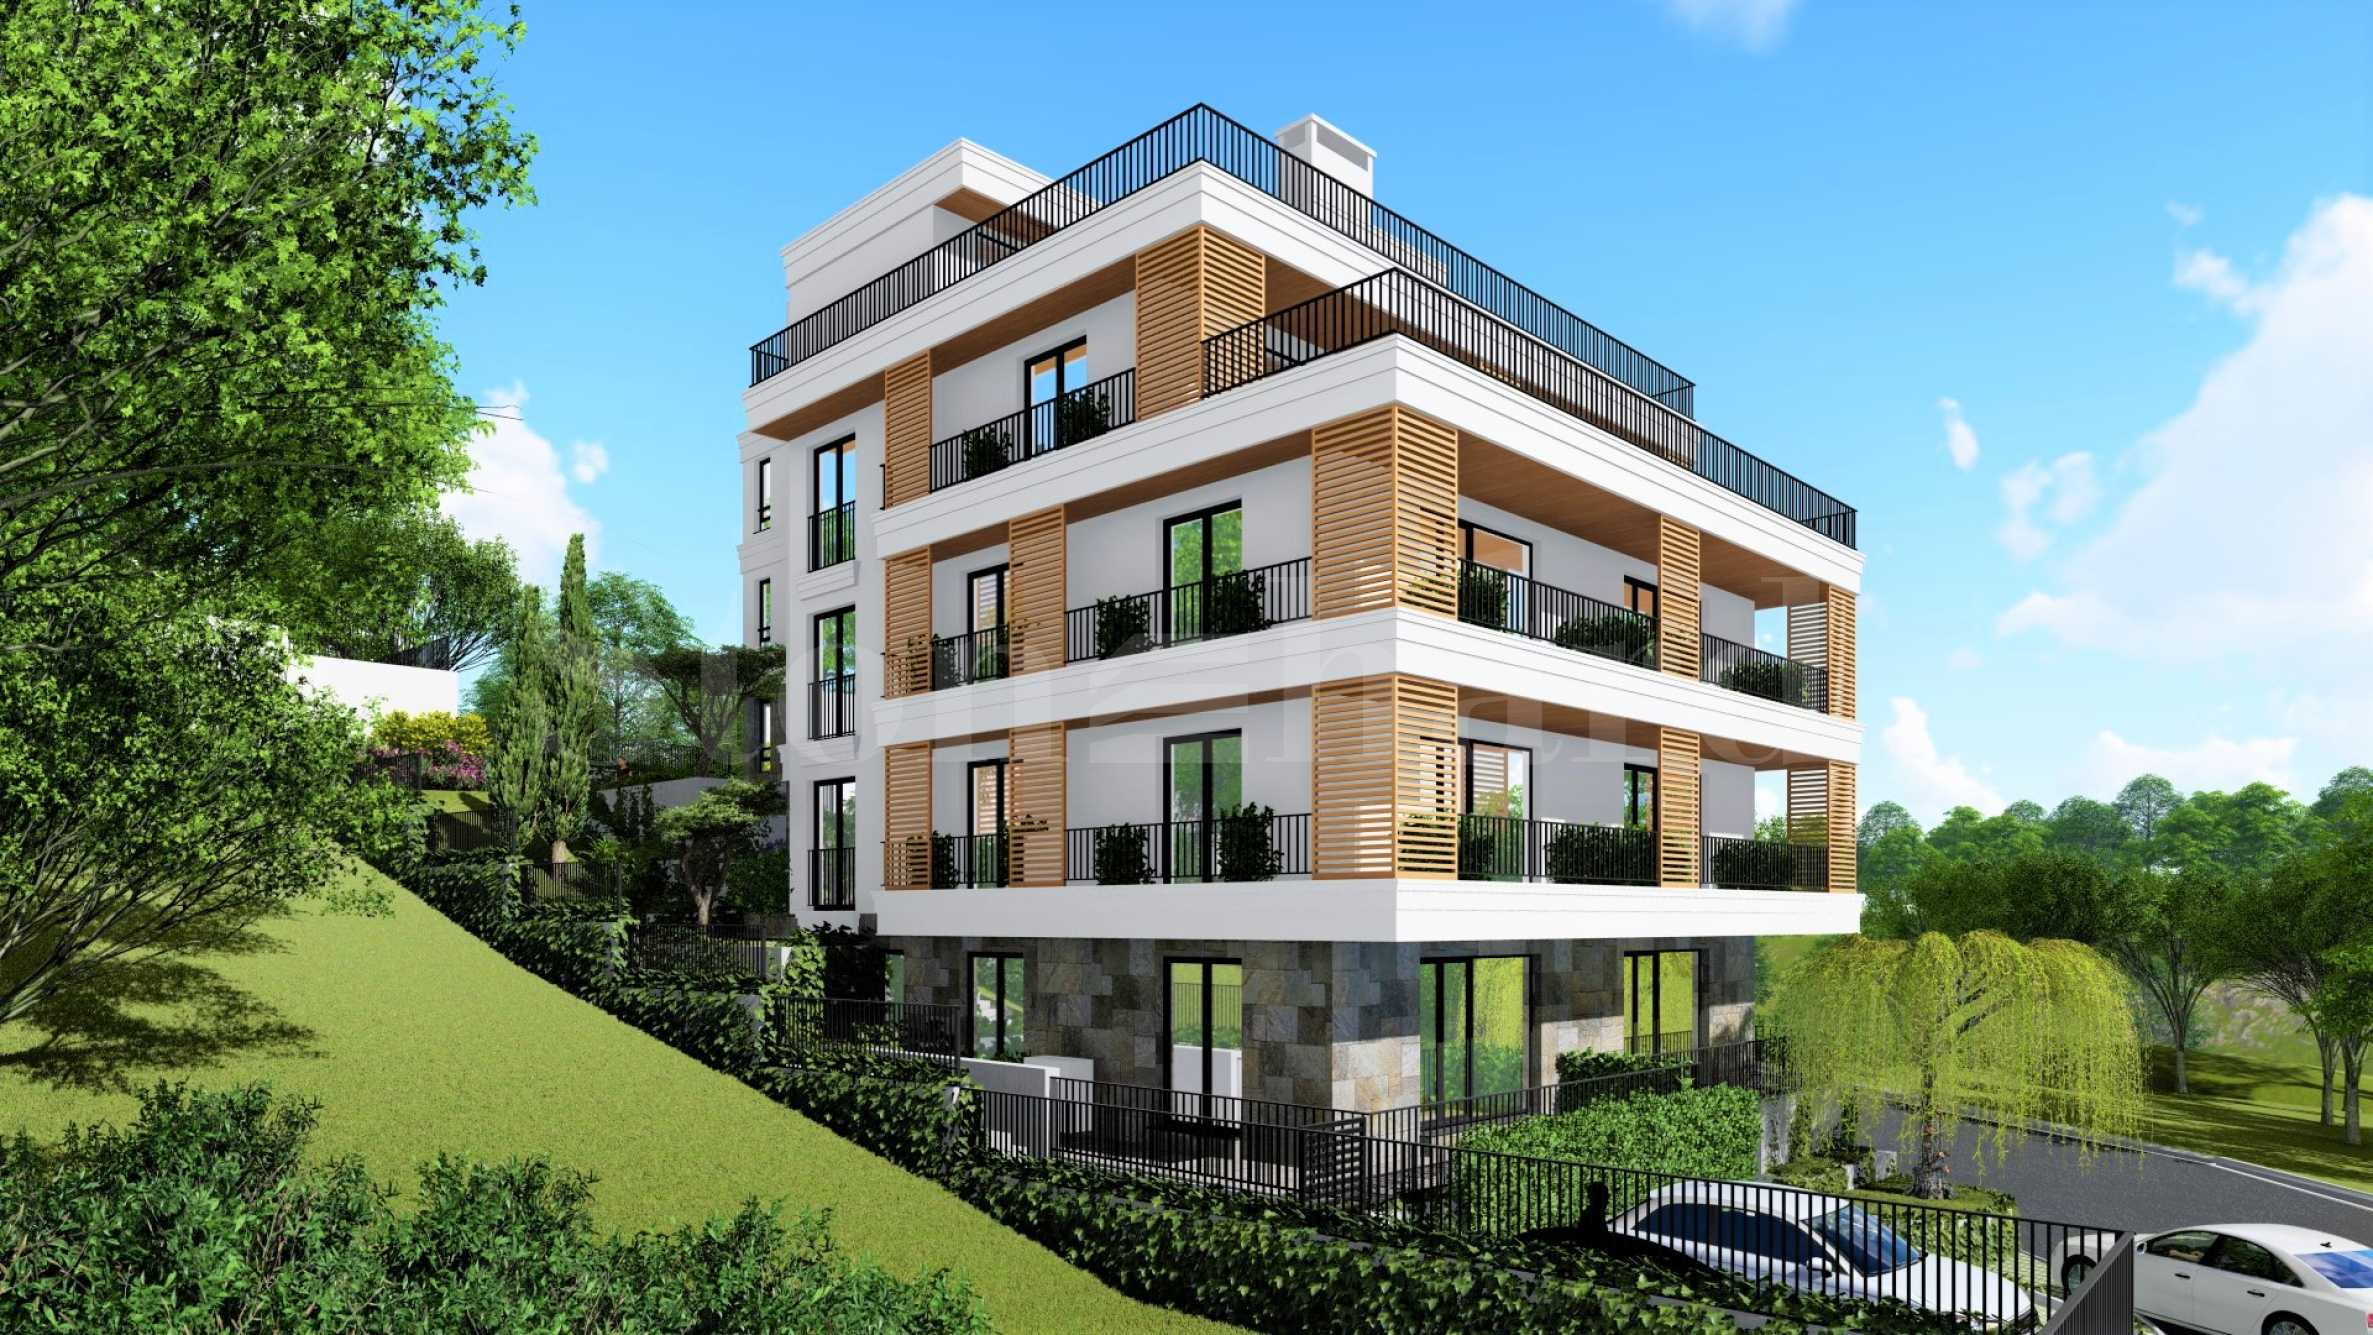 New elegant complex in a Briz quarter in the city of Varna, Bulgaria1 - Stonehard